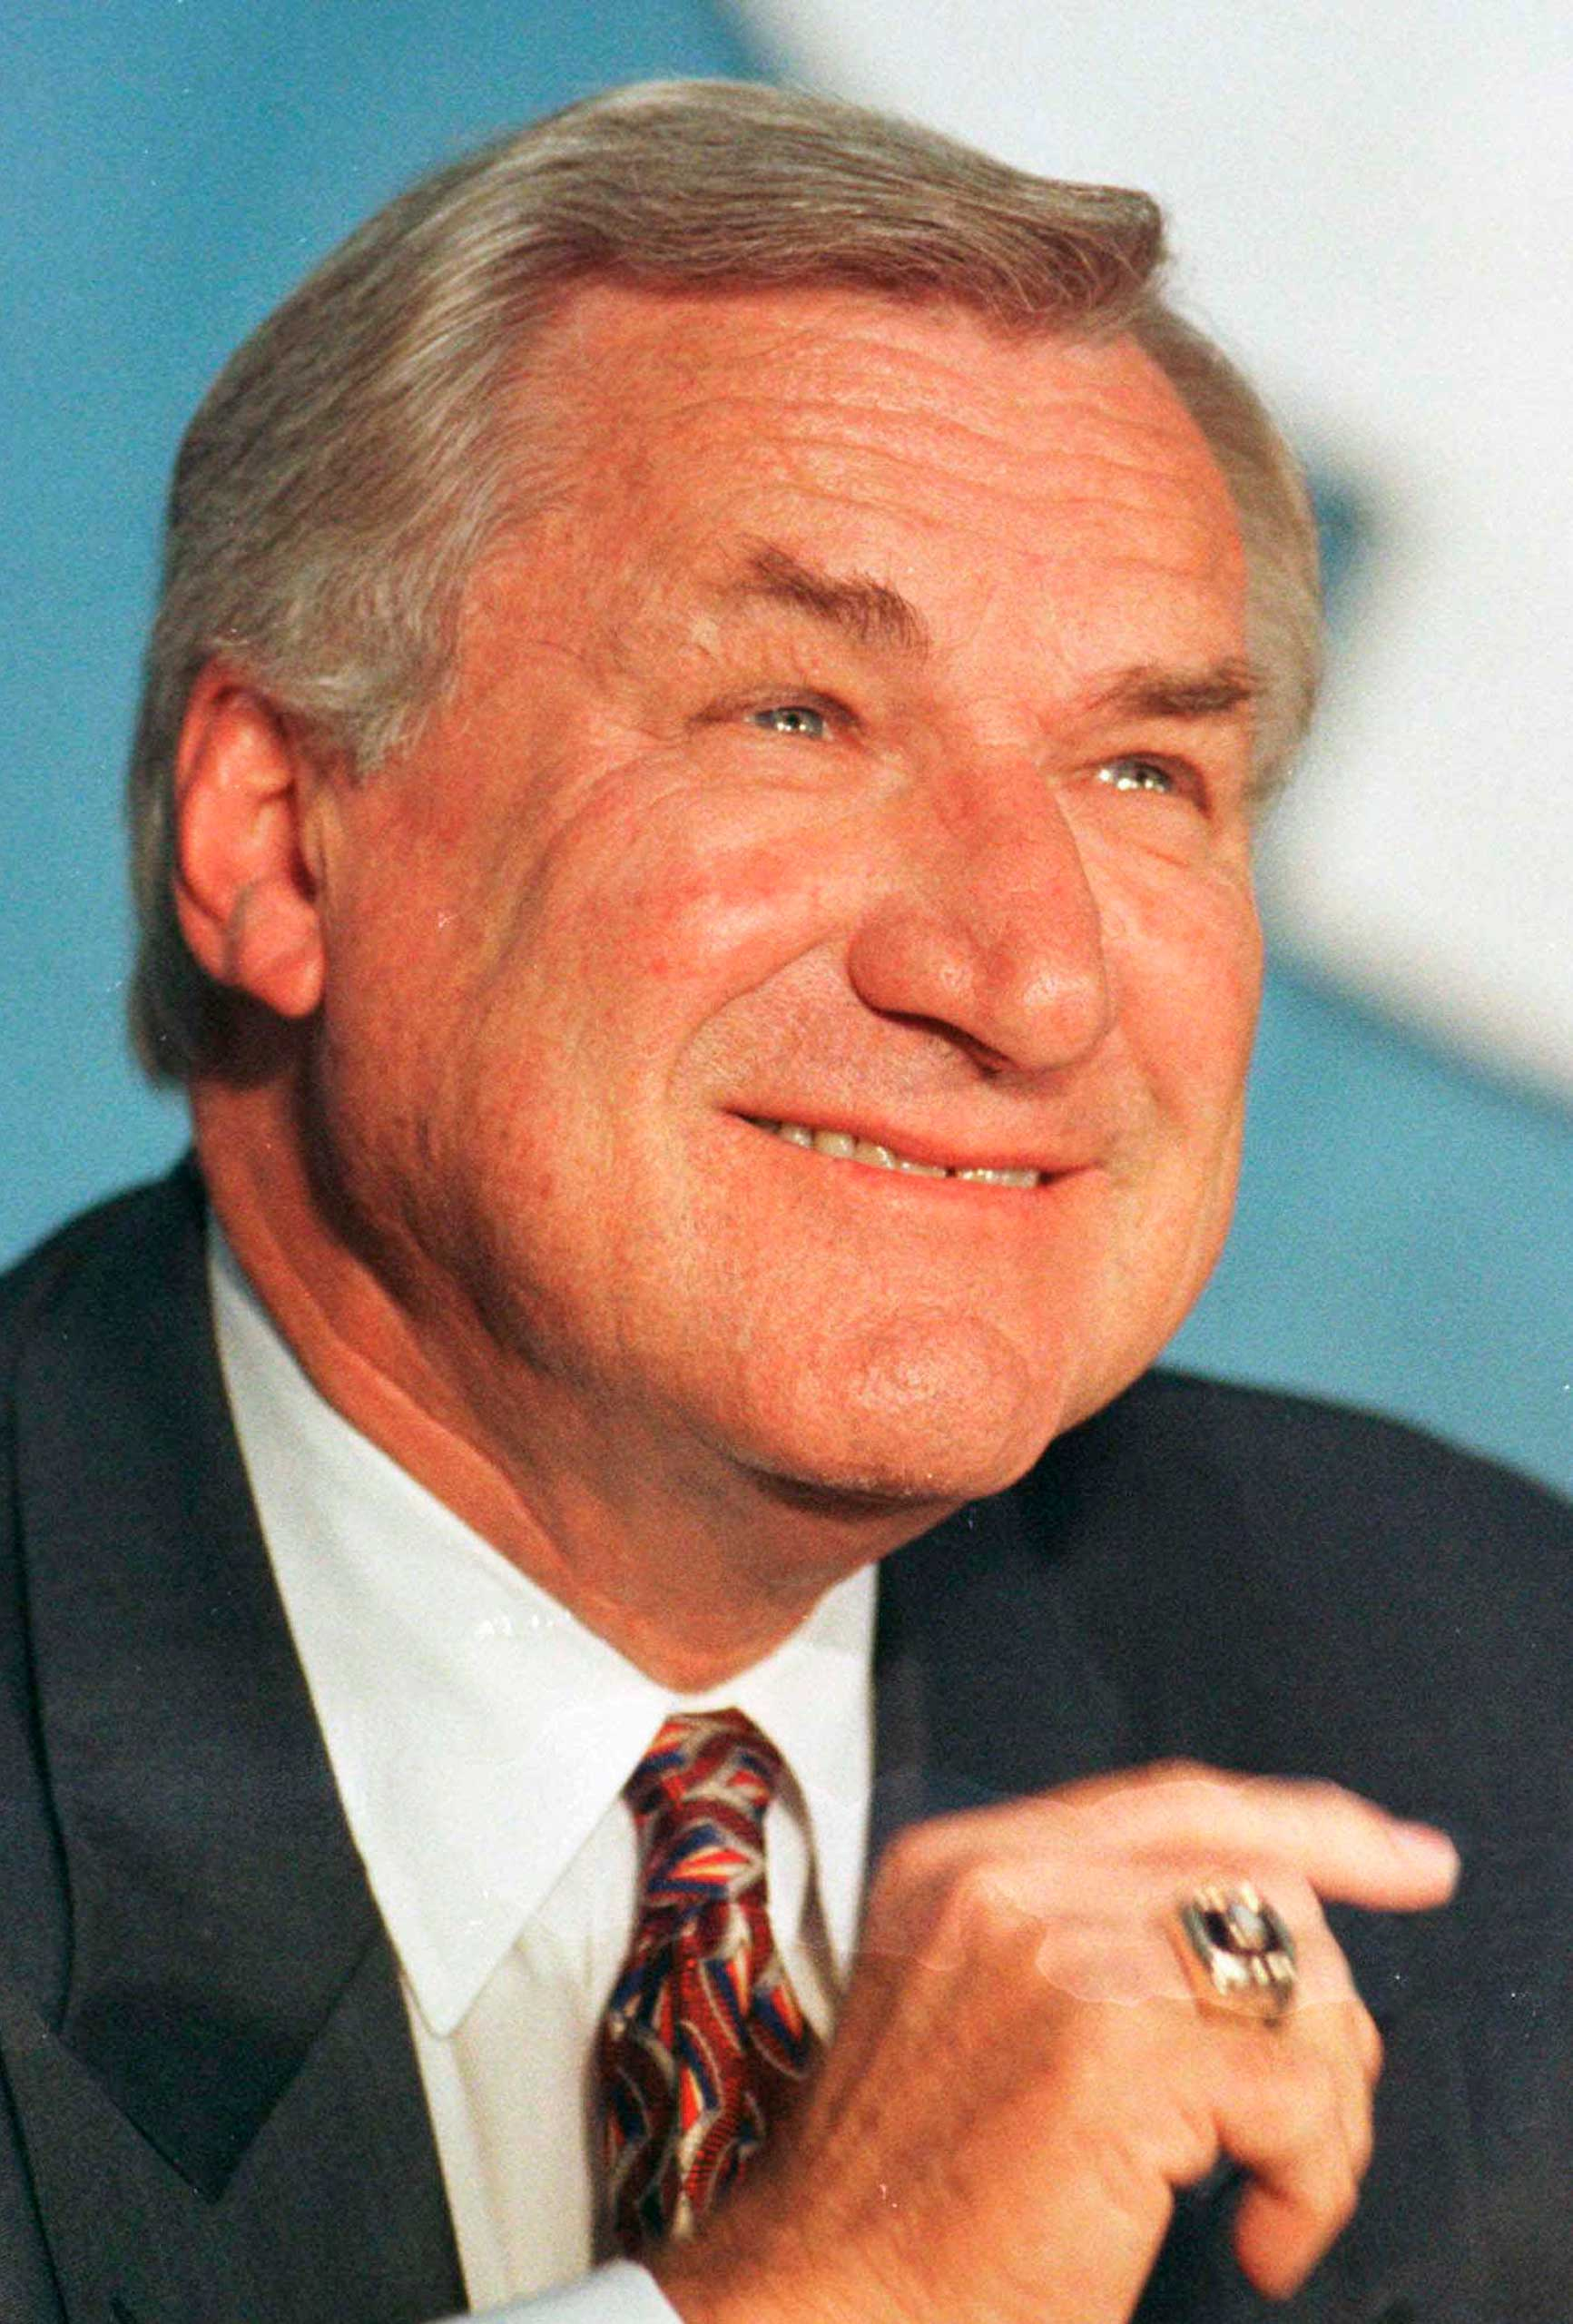 North Carolina basketball coach Dean Smith during a news conference where he announced his retirement, in Chapel Hill, N.C. on Oct. 9, 1997.